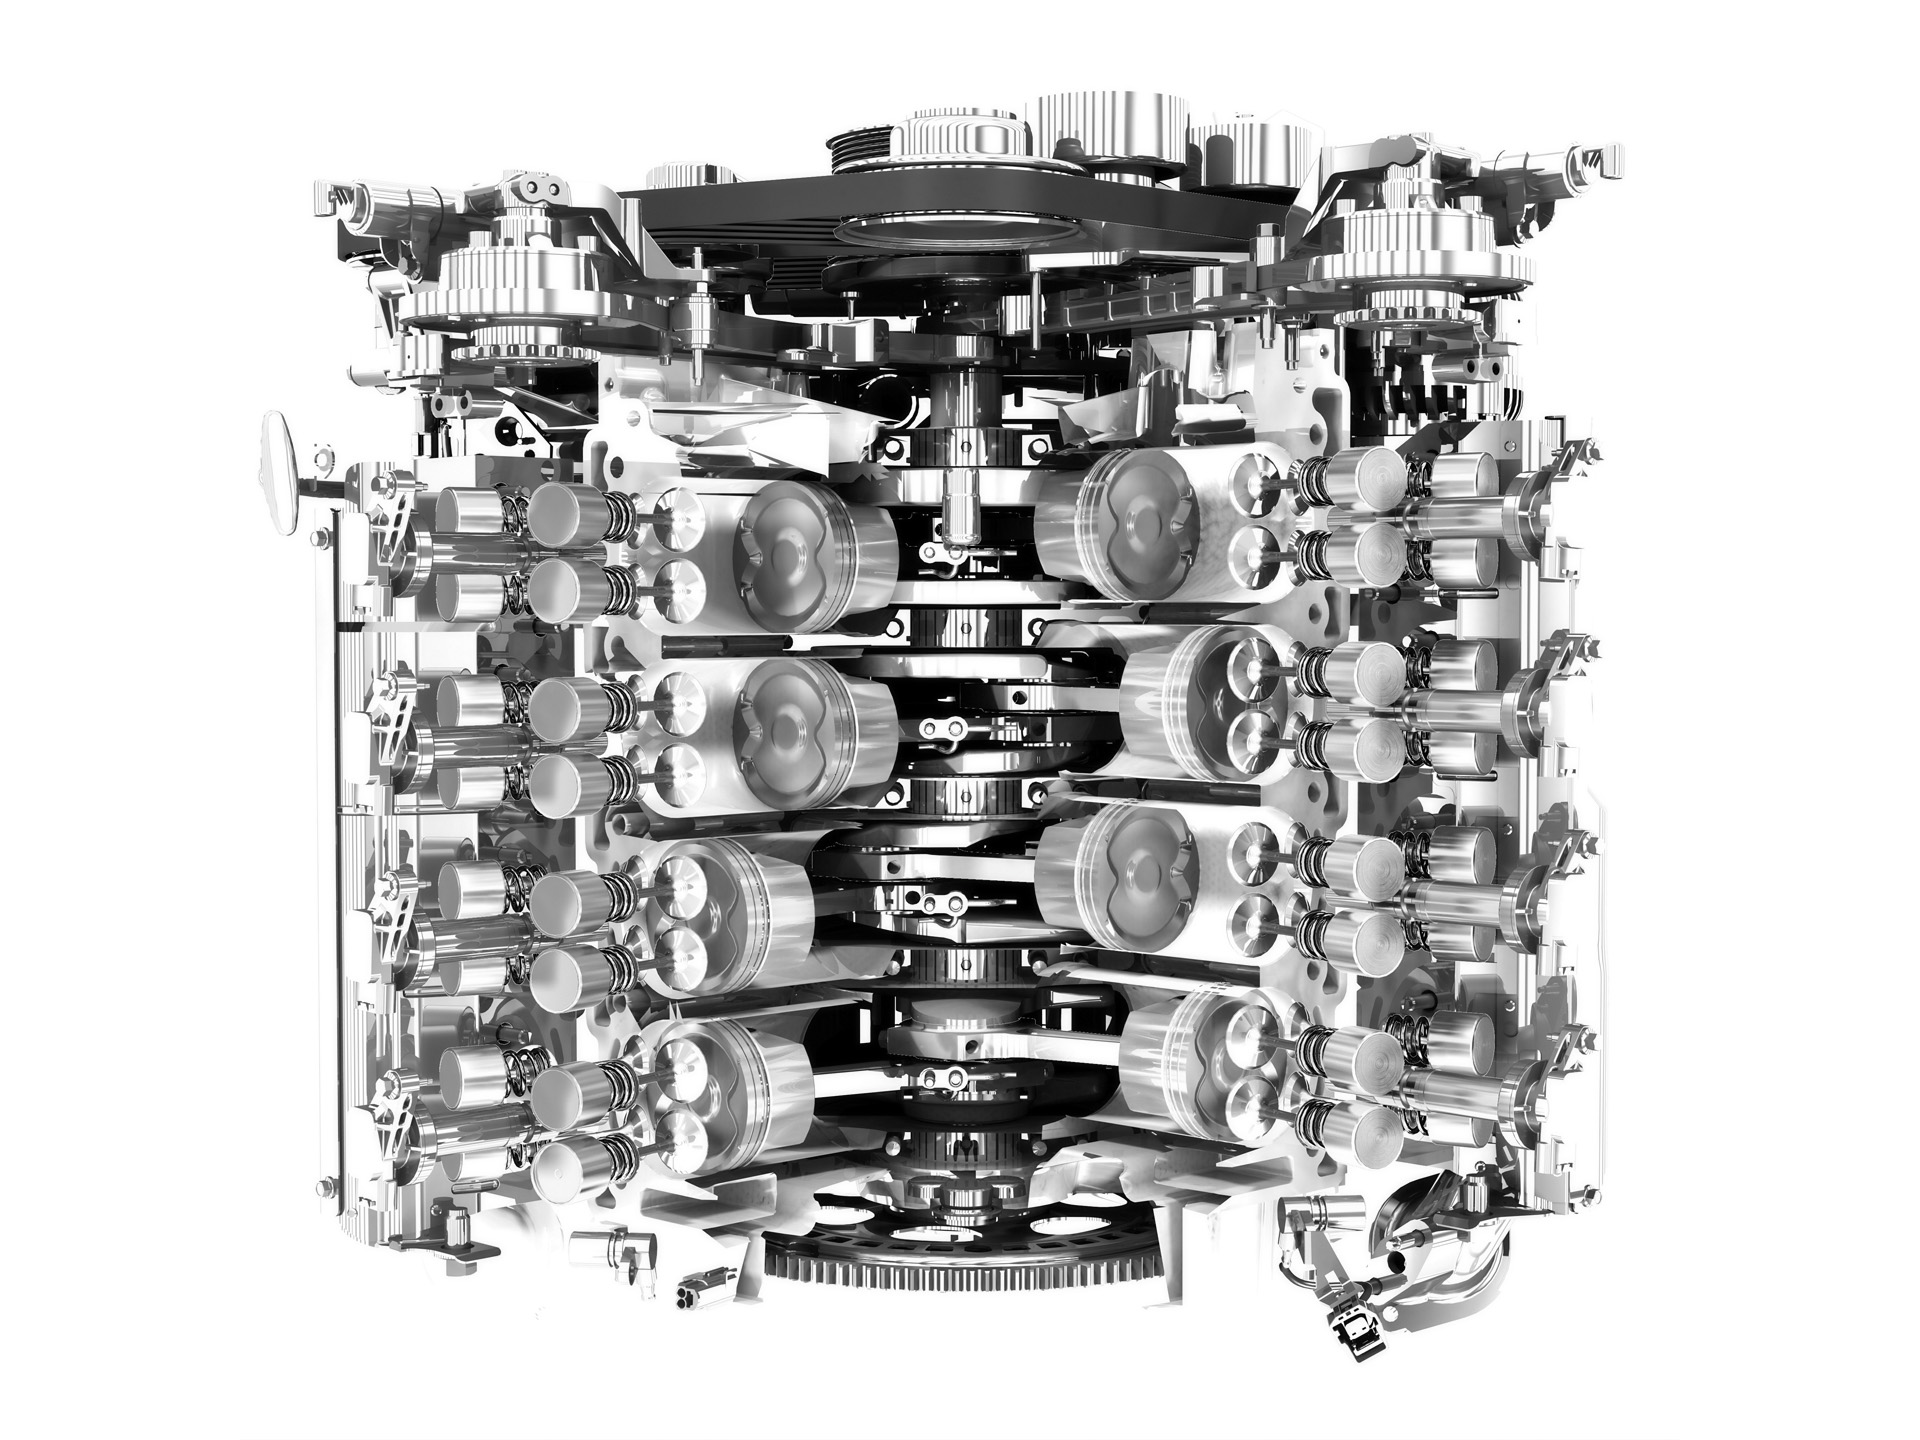 Sample C1706 Engine